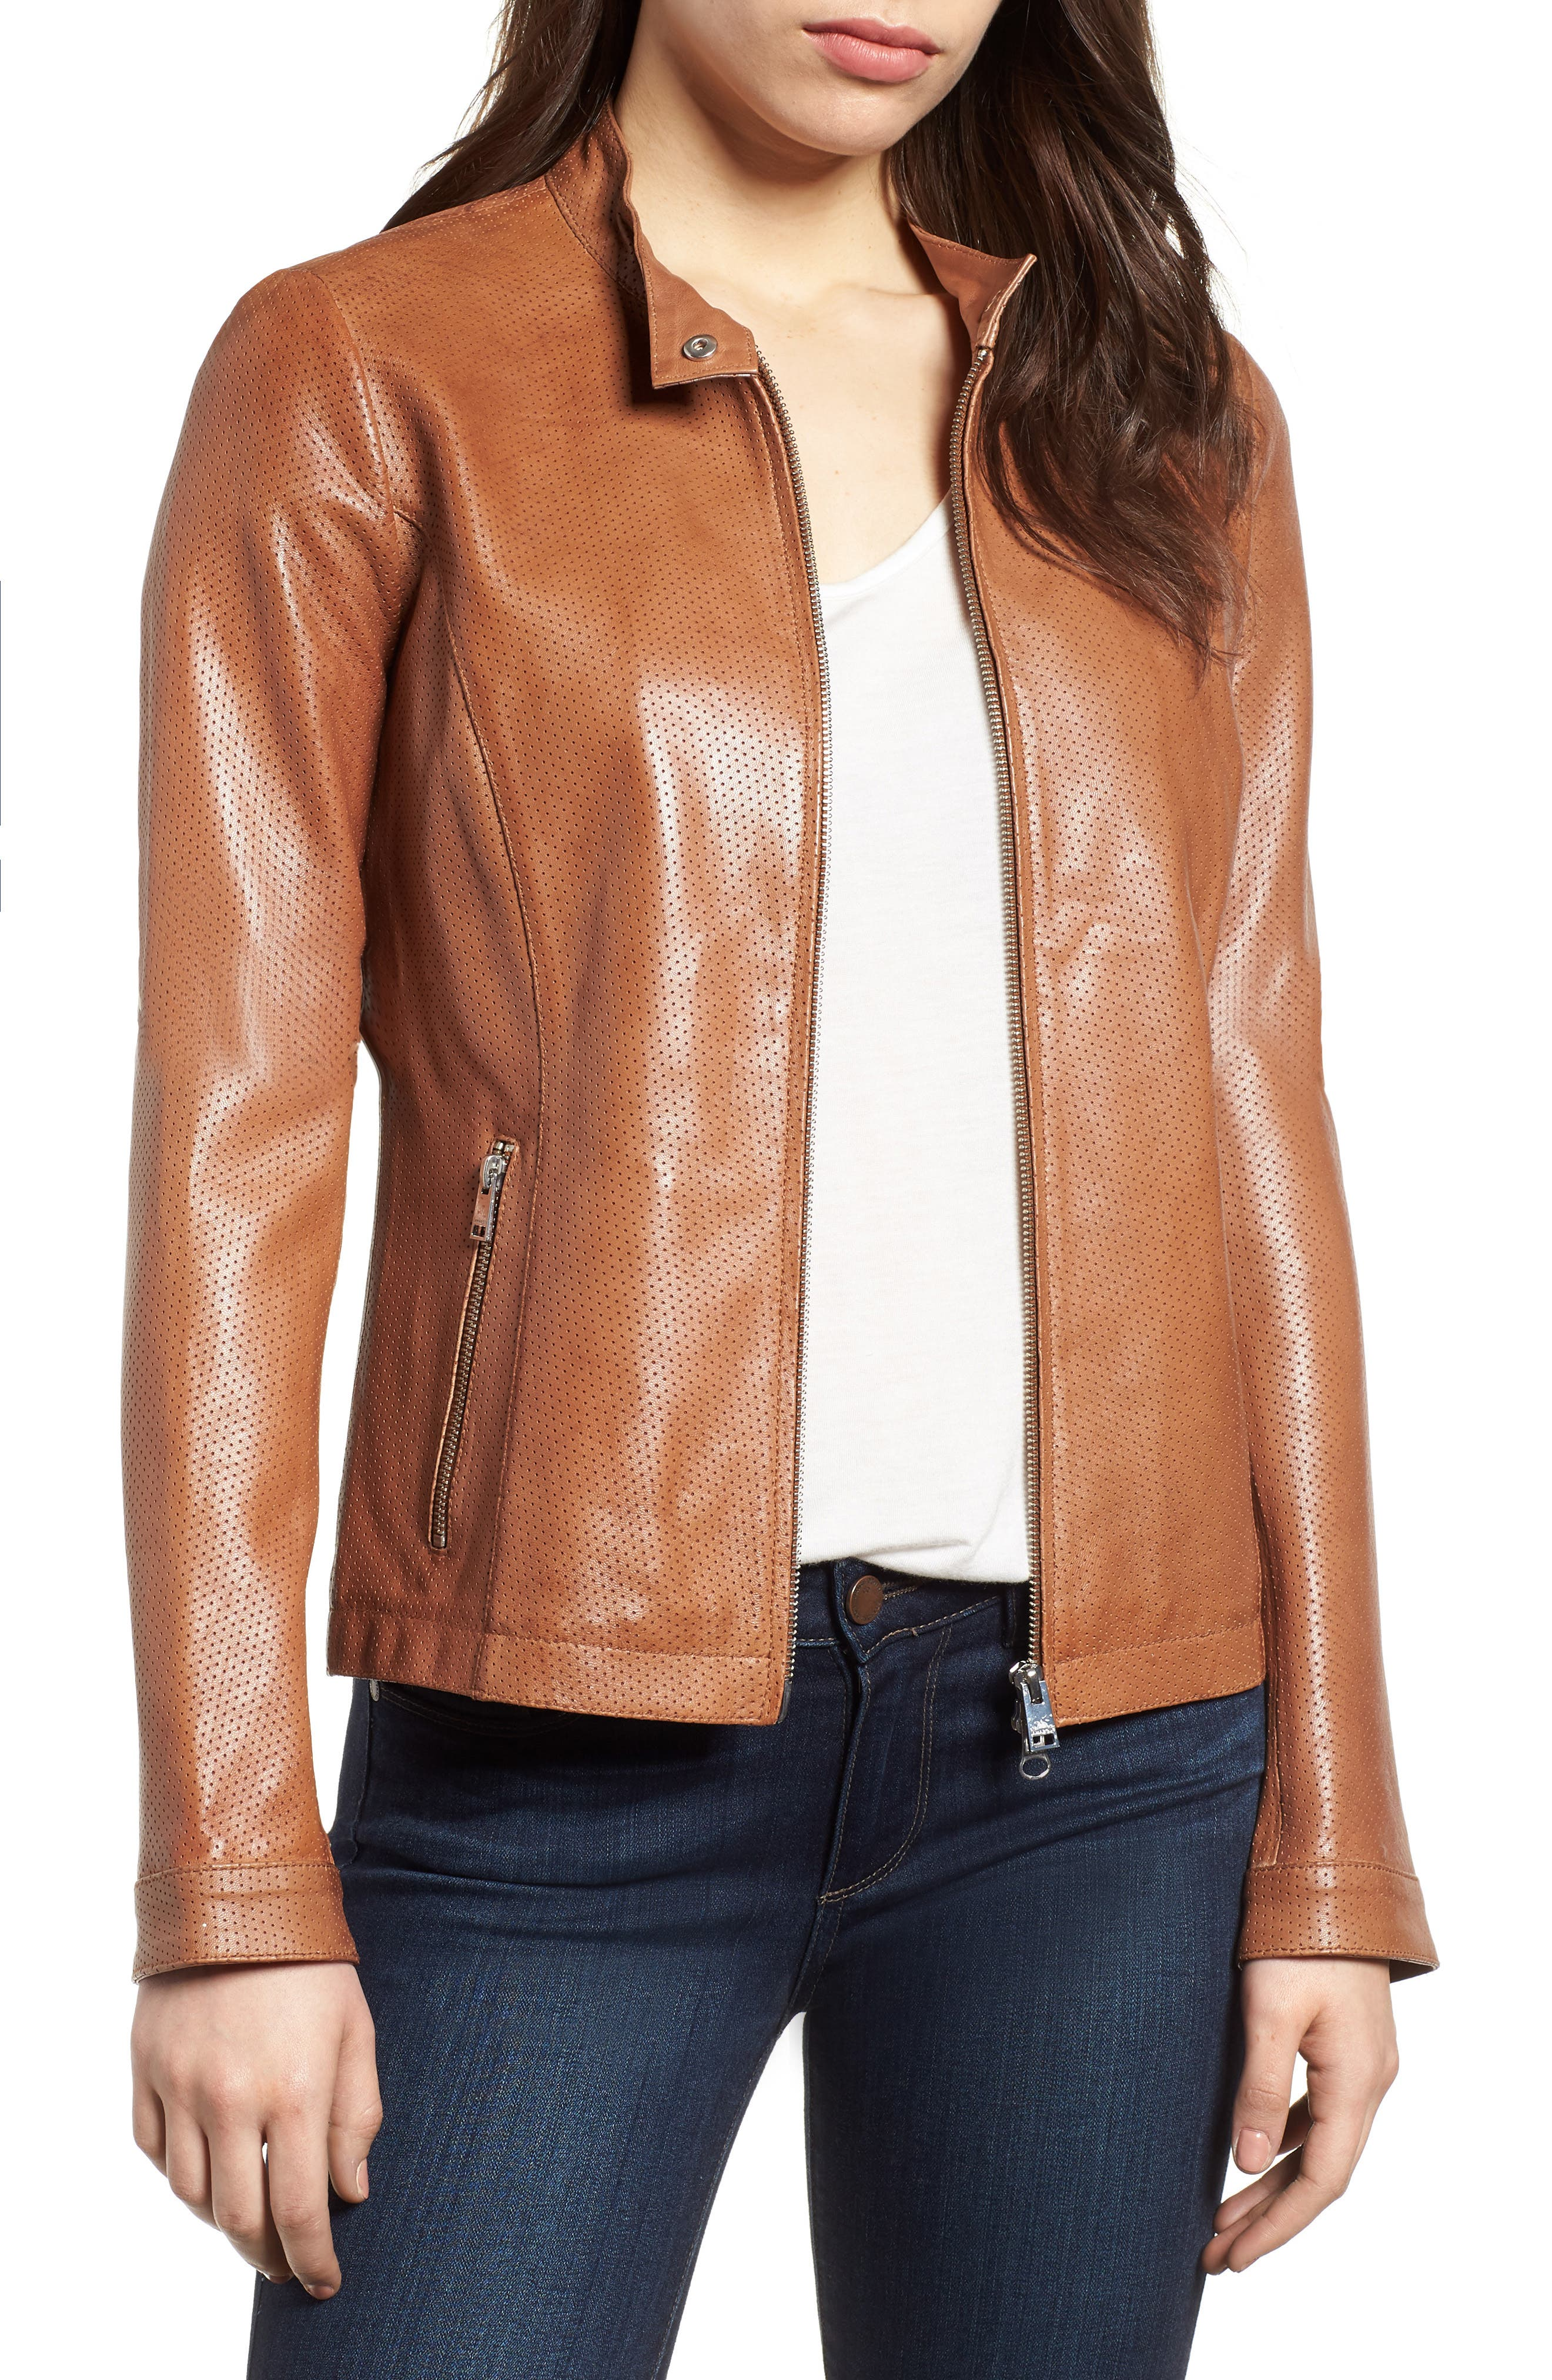 LAMARQUE PERFORATED LEATHER BIKER JACKET